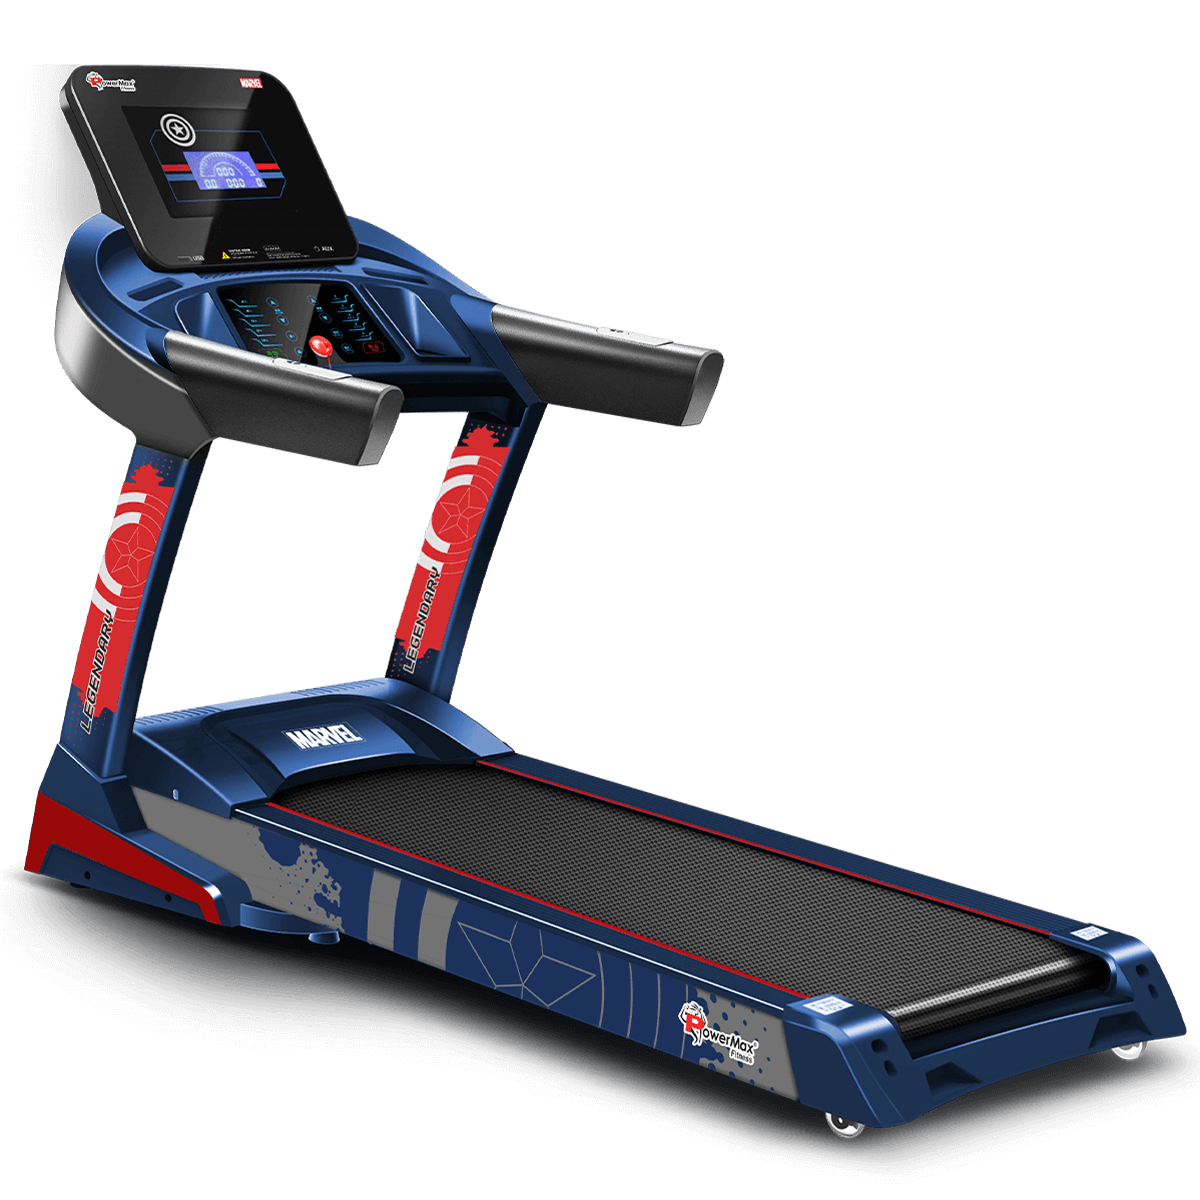 MTC-3600 AC Motorized Treadmill with Auto Lubrication and Auto Incline